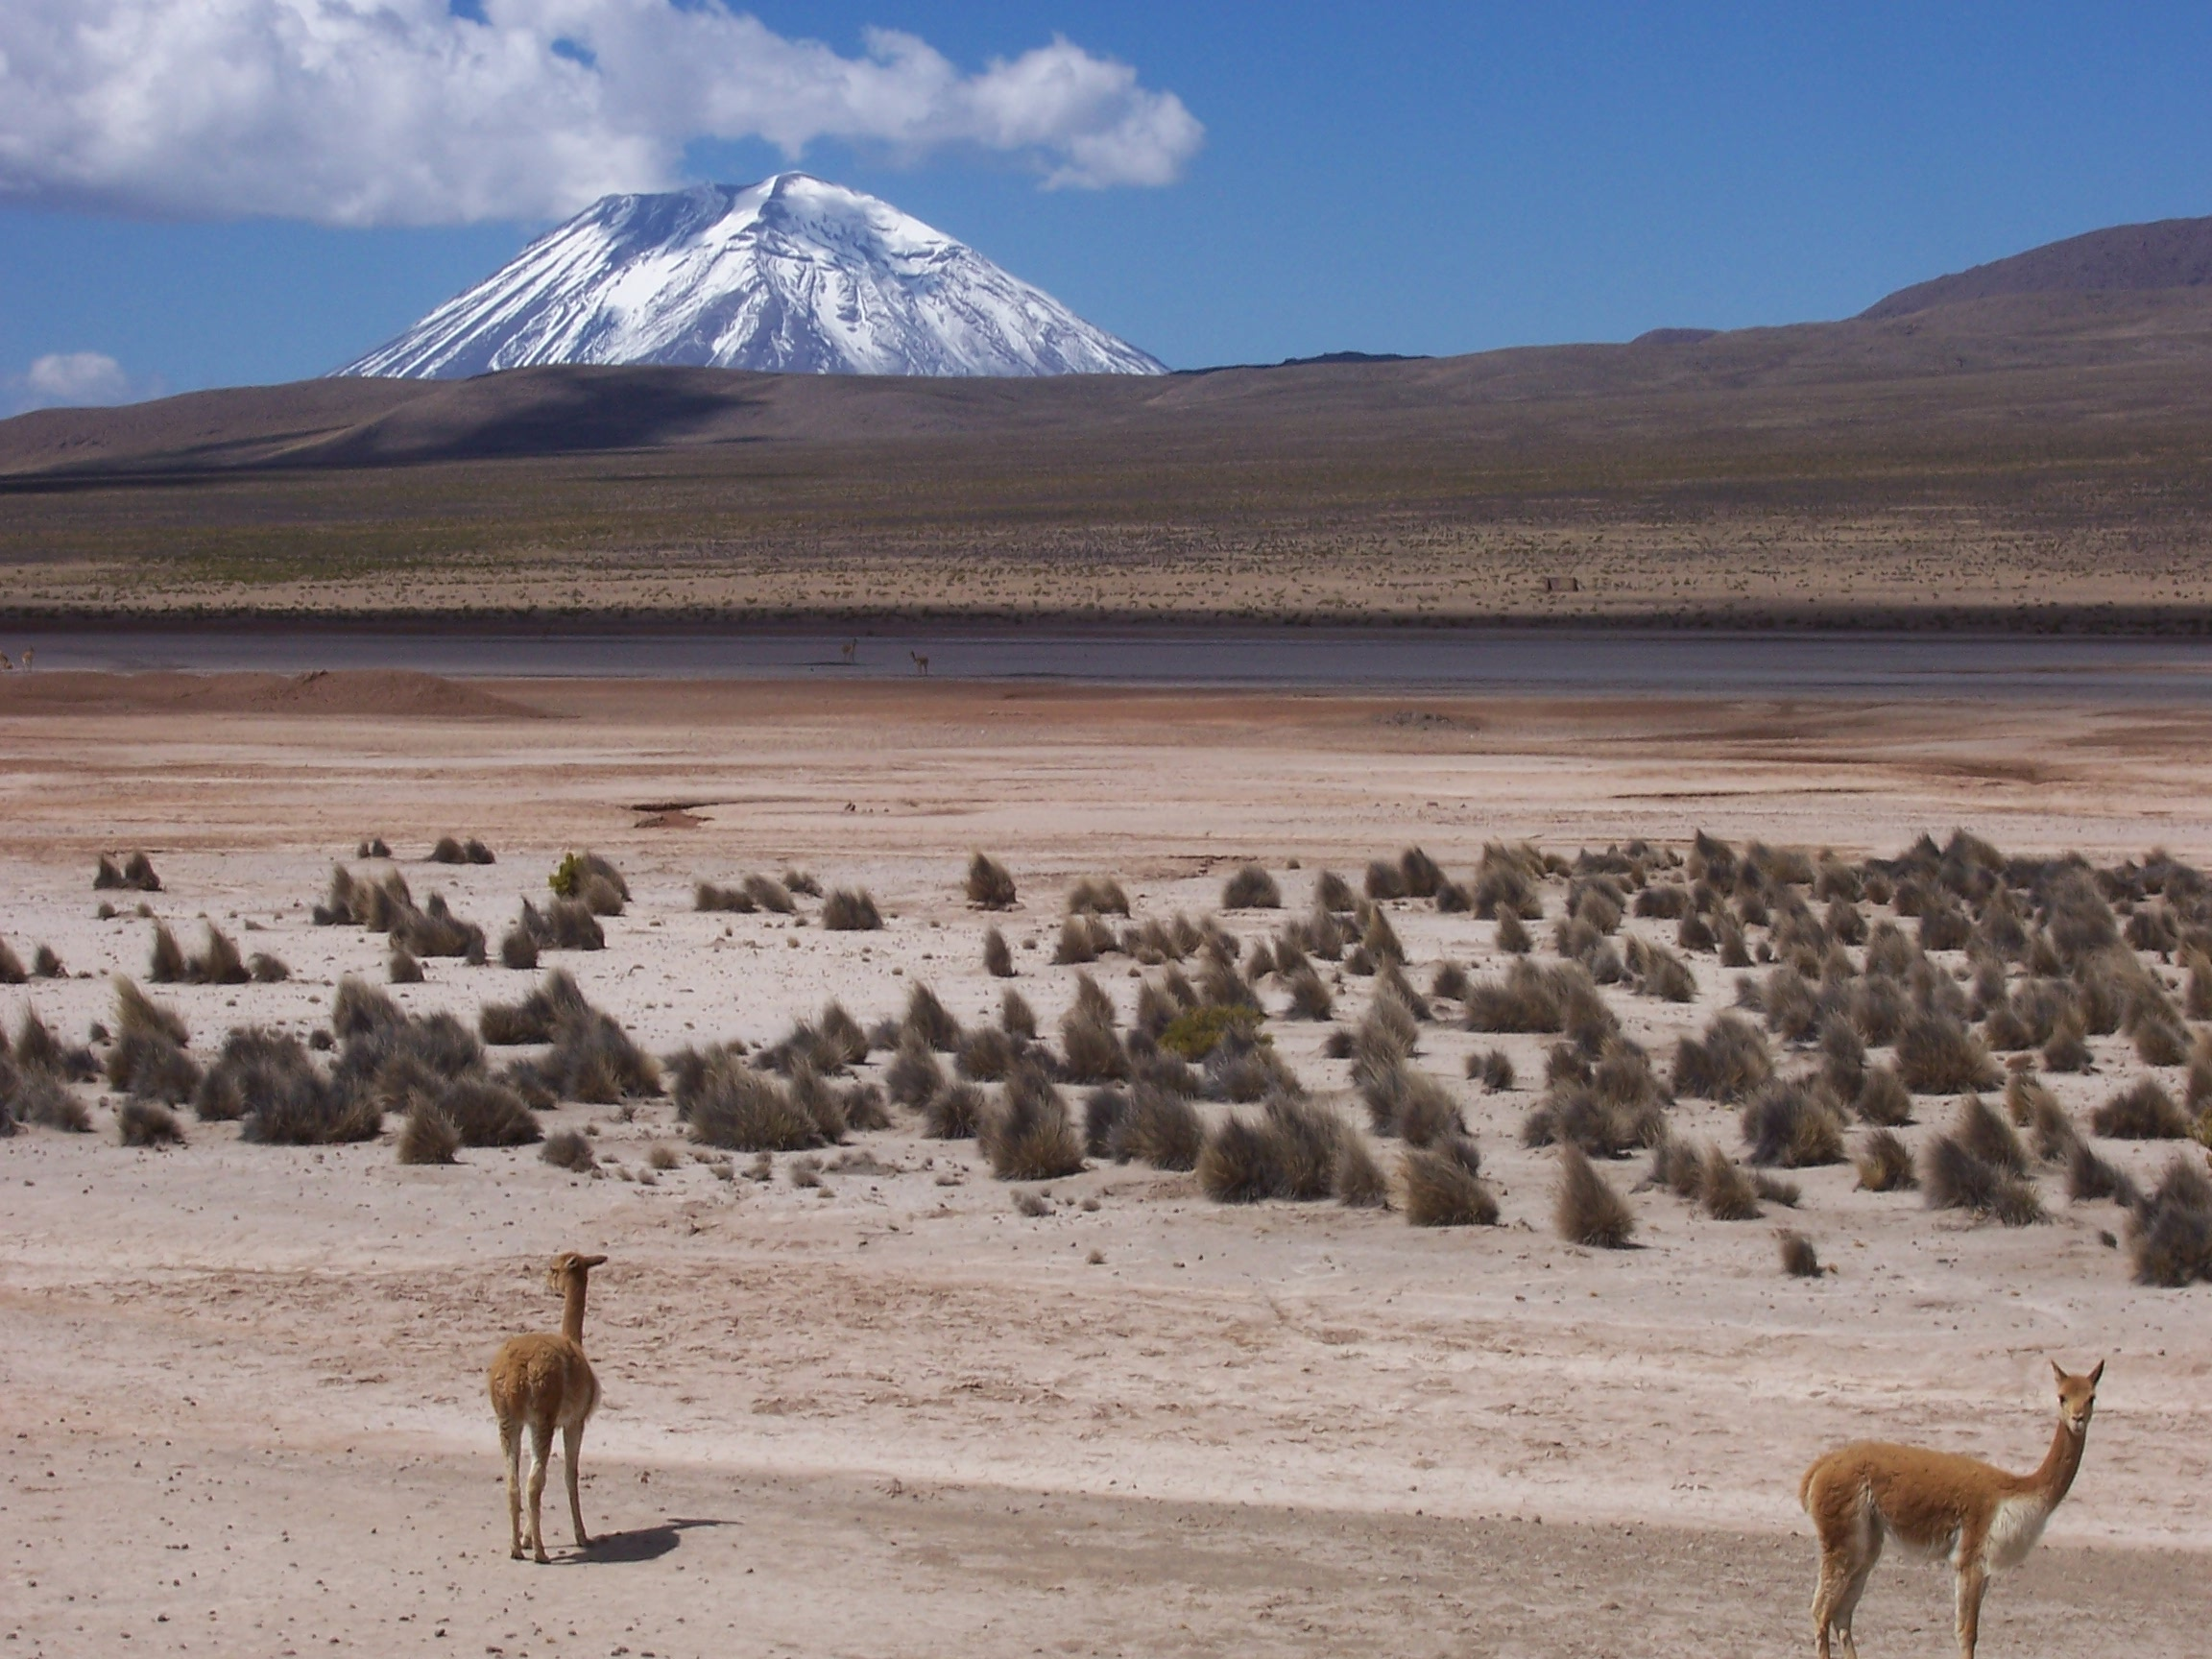 Altiplano of Peru on the road from Arequipa to the Colca Canyon